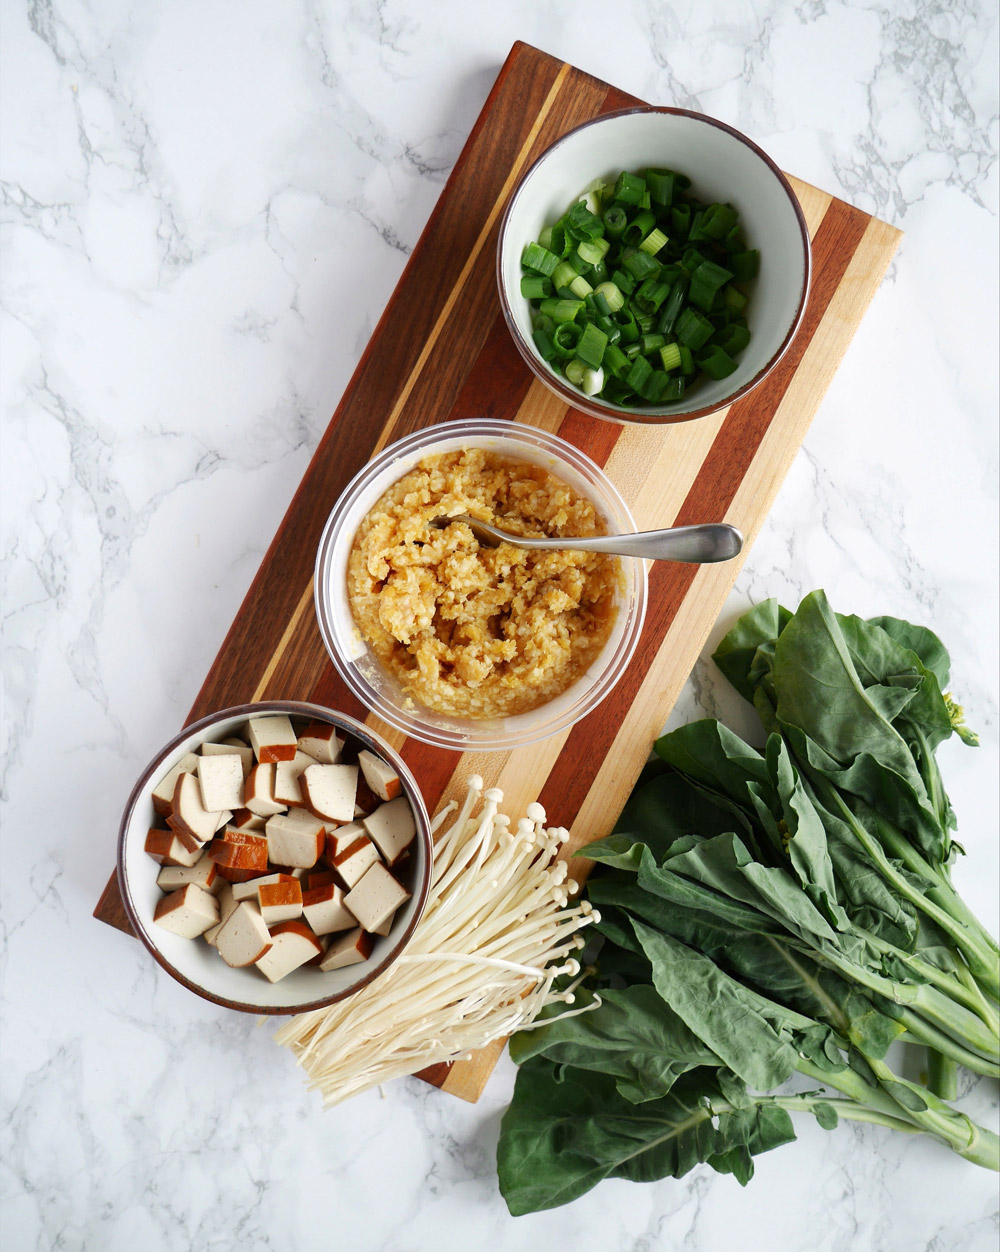 Chickpea Miso, Beancurd, Scallions, Enoki Mushroom, Chinese Broccoli